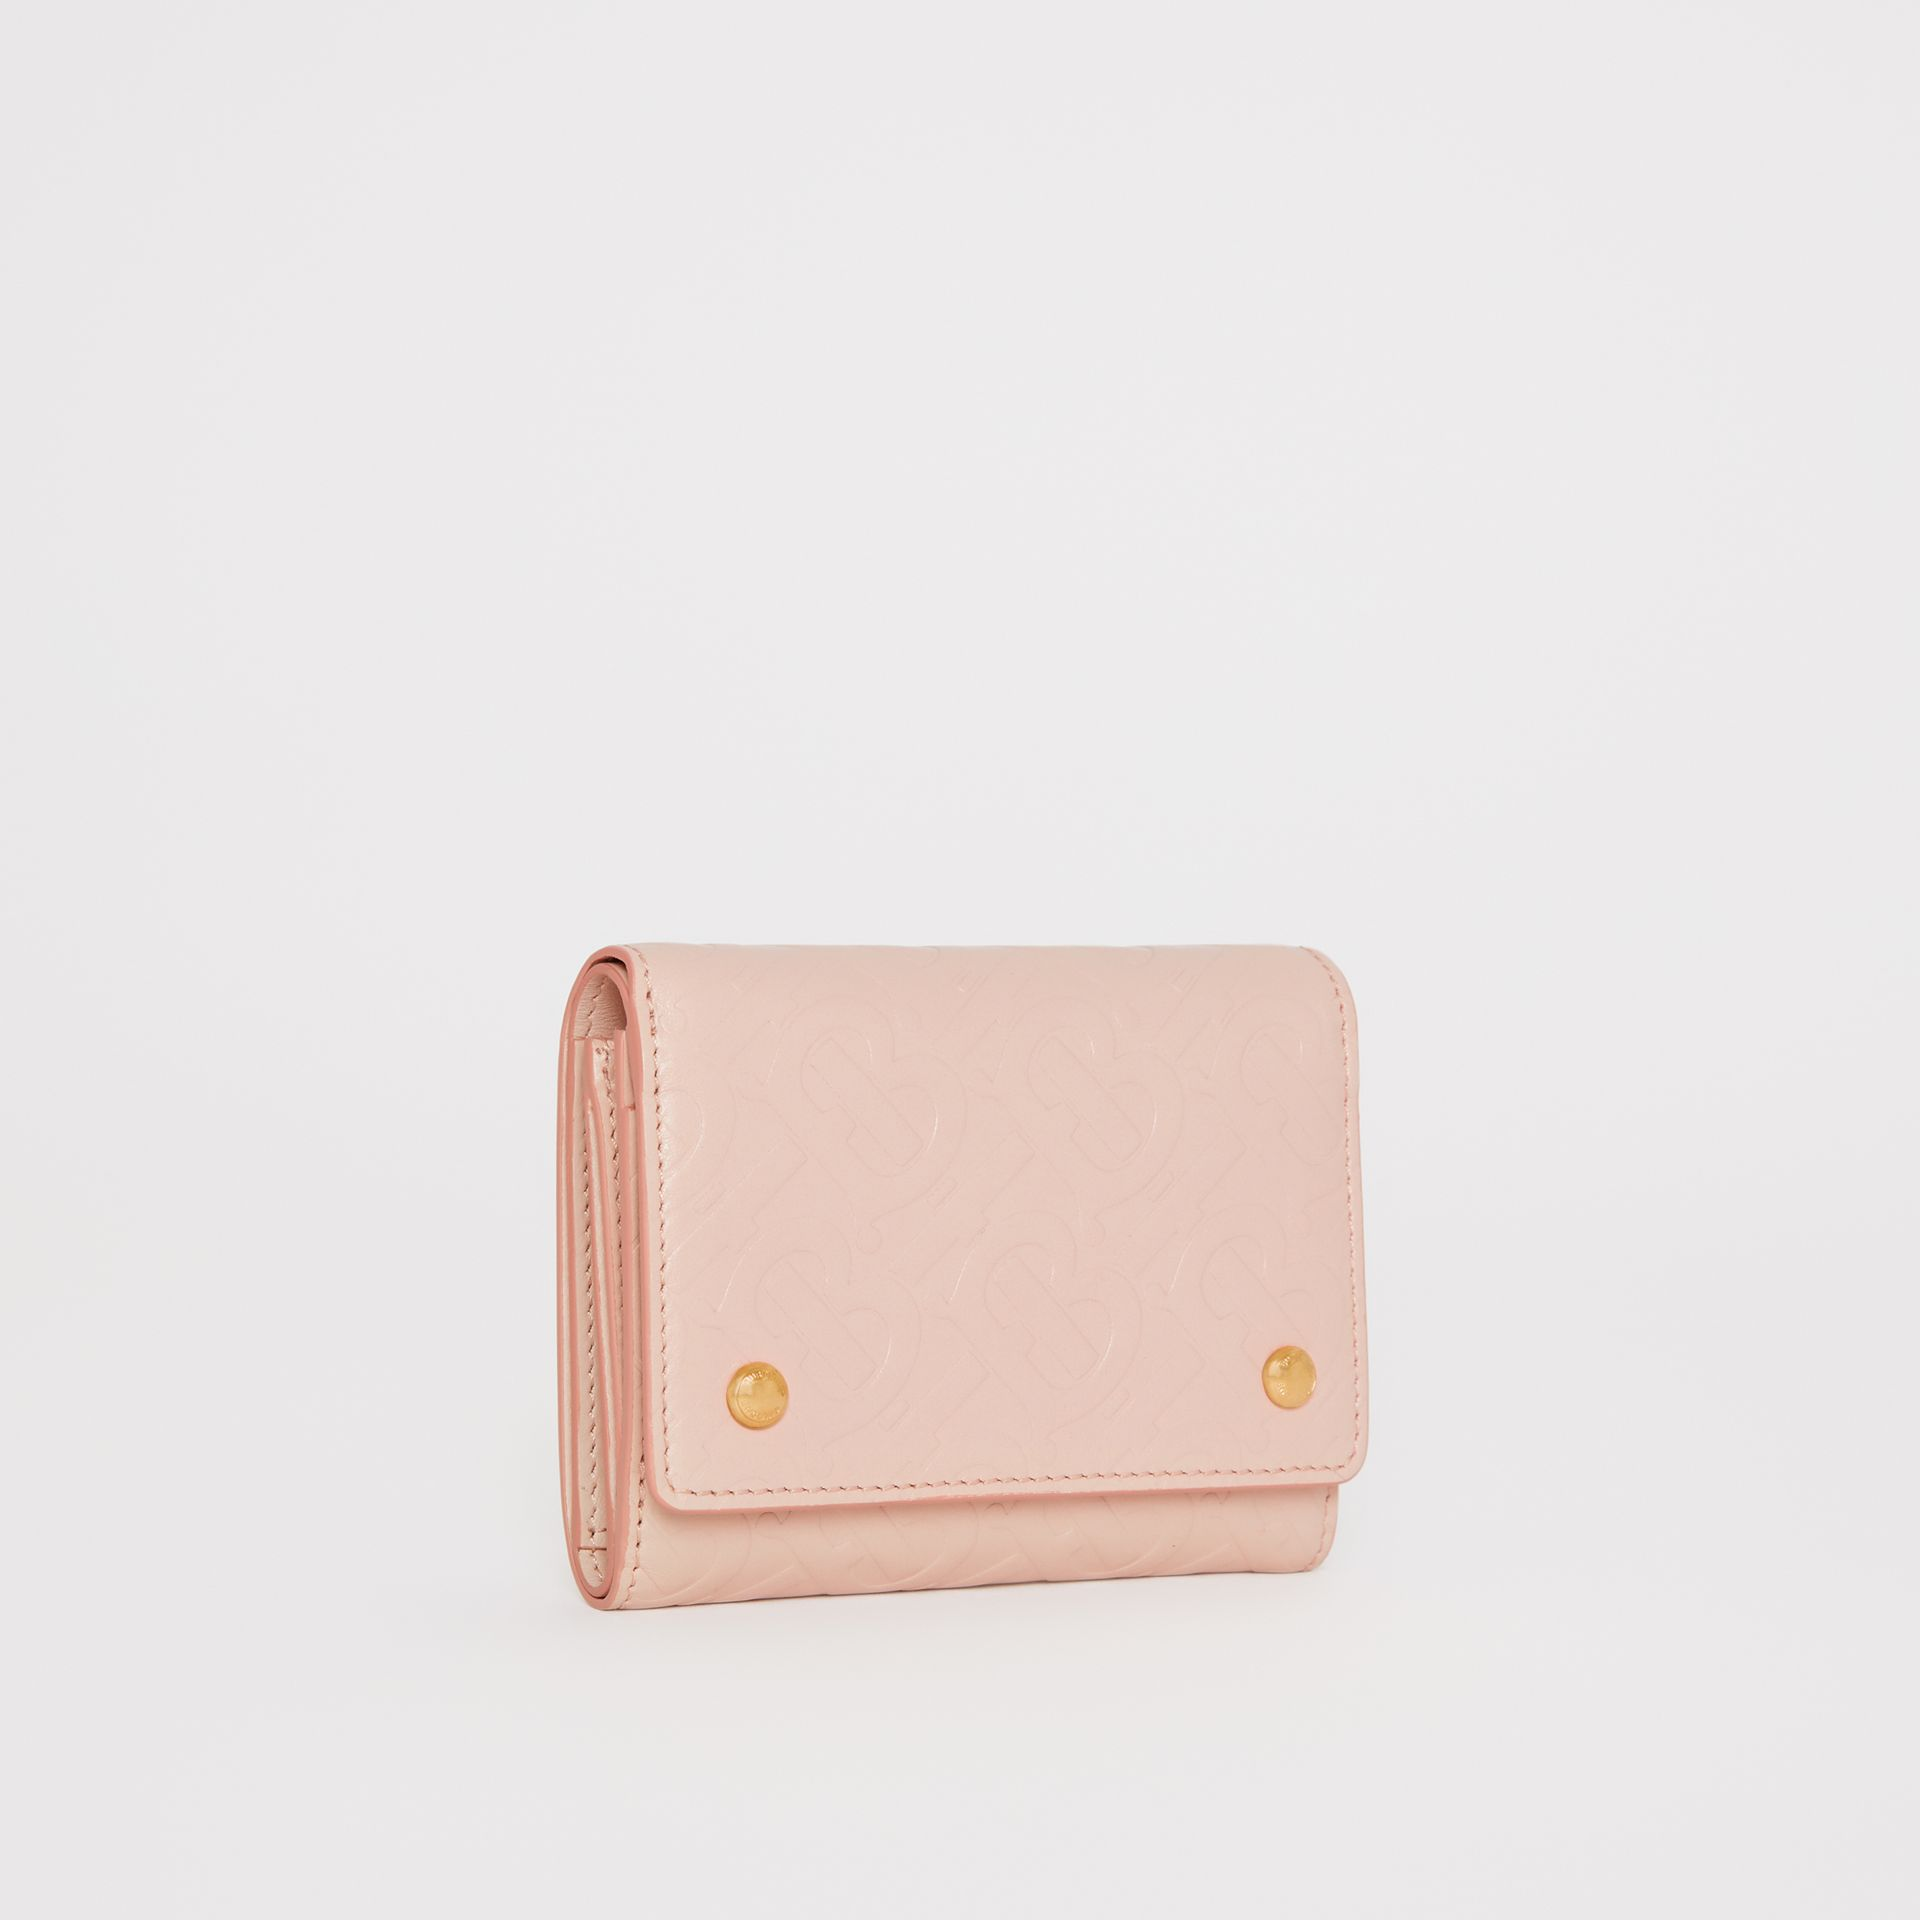 Small Monogram Leather Folding Wallet in Rose Beige | Burberry United States - gallery image 3